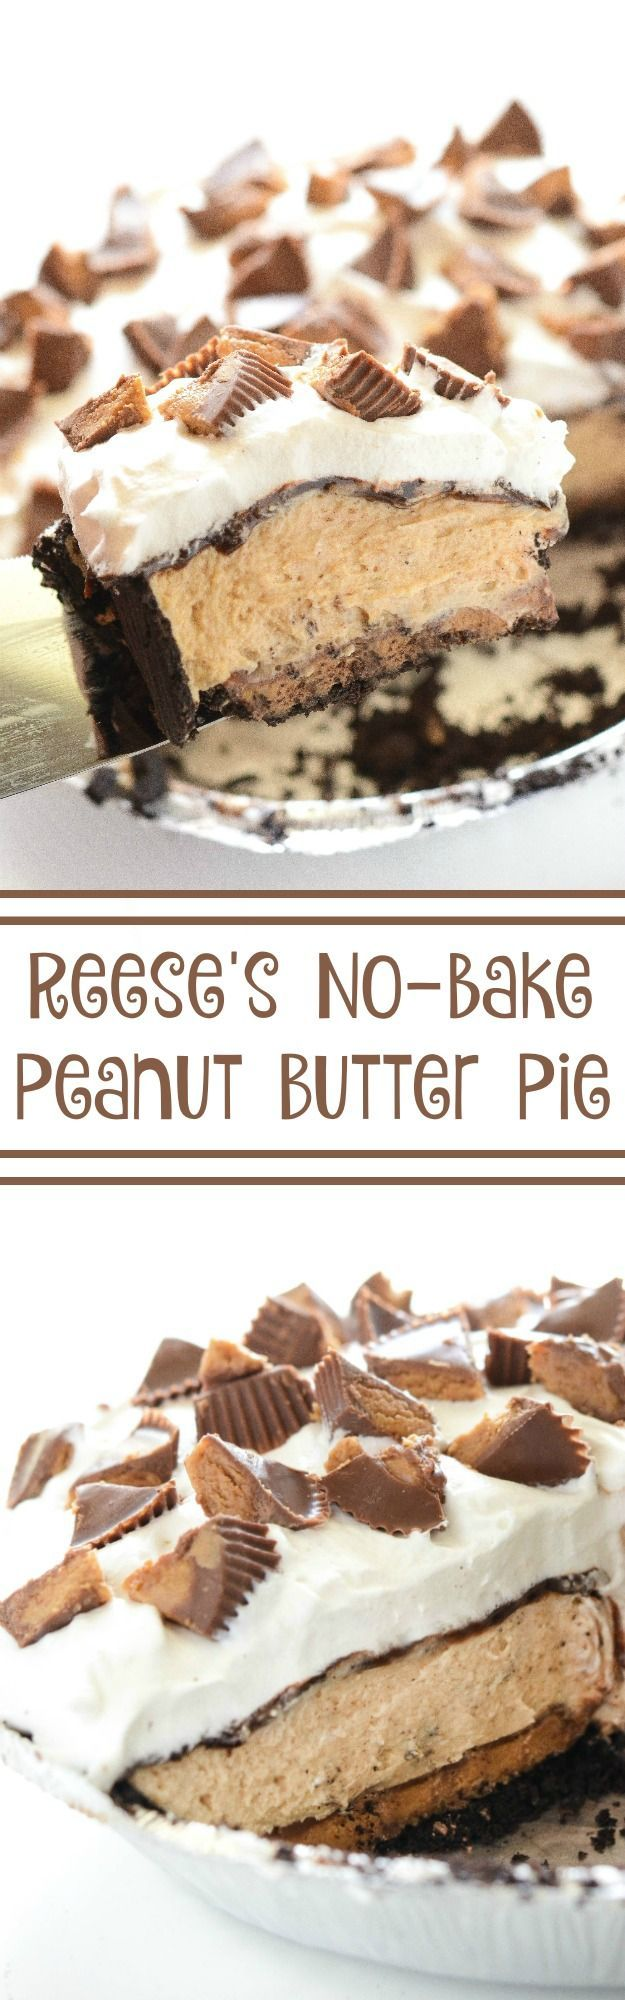 Reese's Peanut Butter No-Bake Pie! It all starts with a chocolate crust and a…